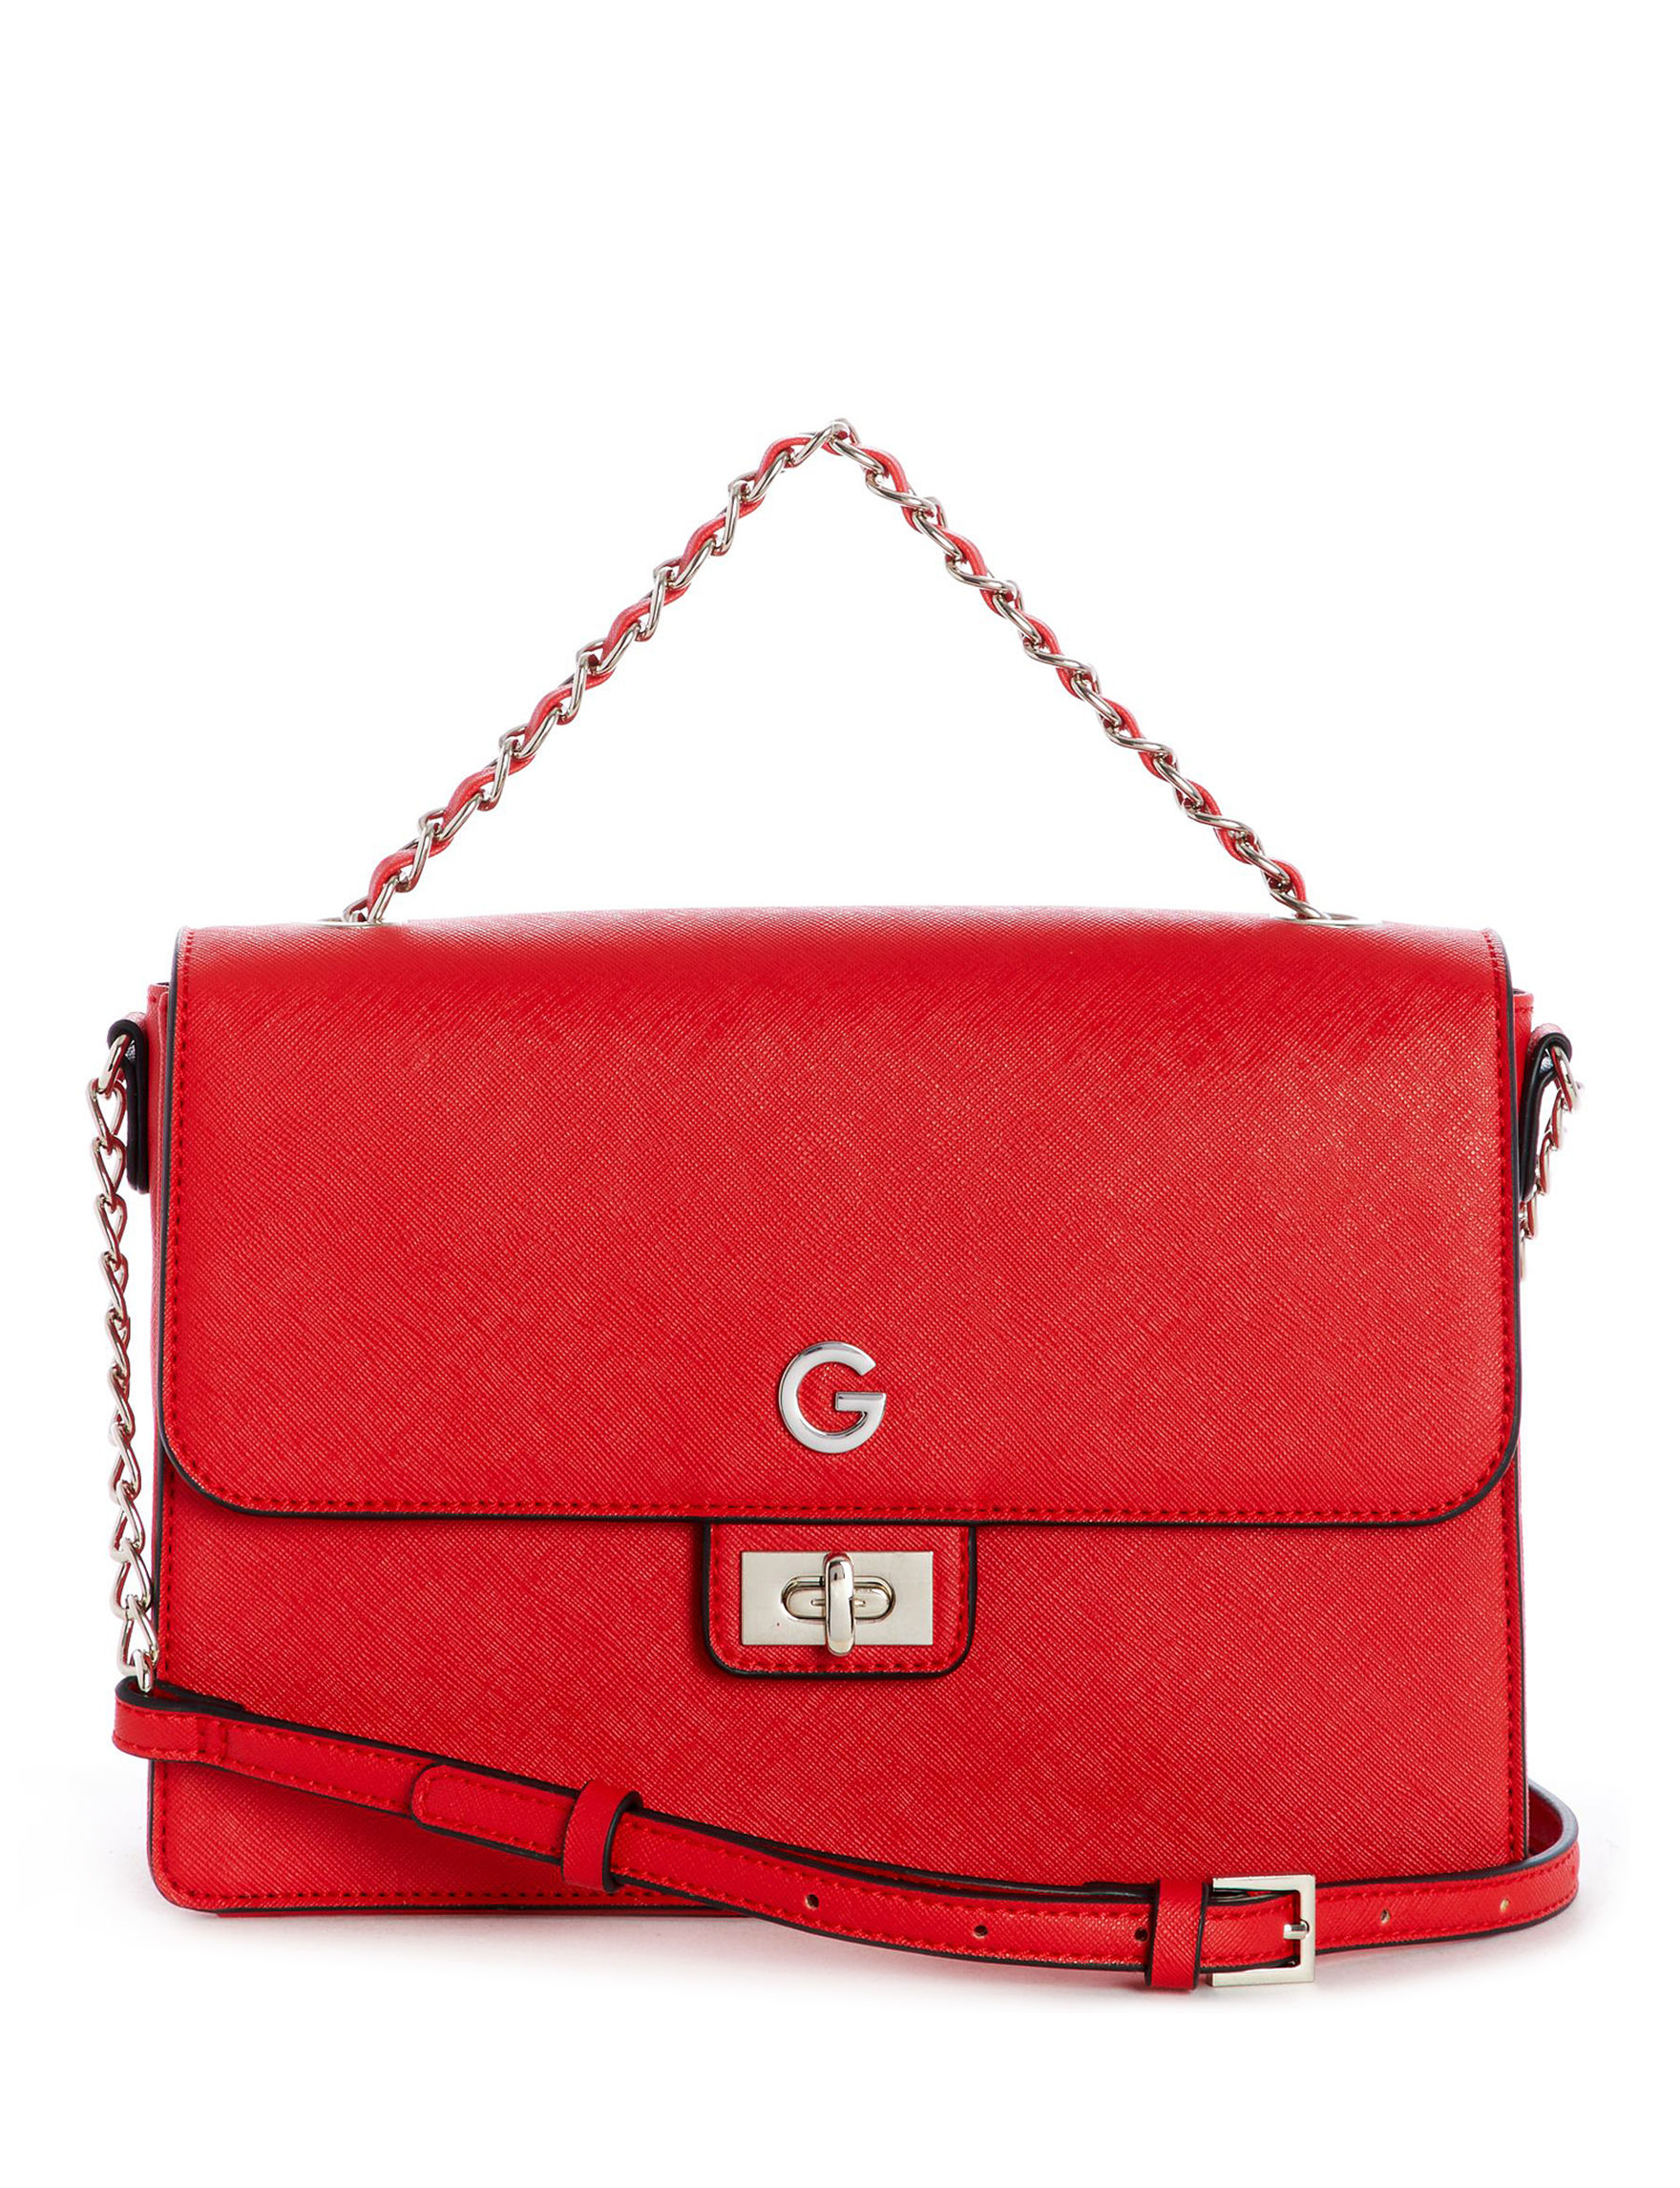 G by Guess Red